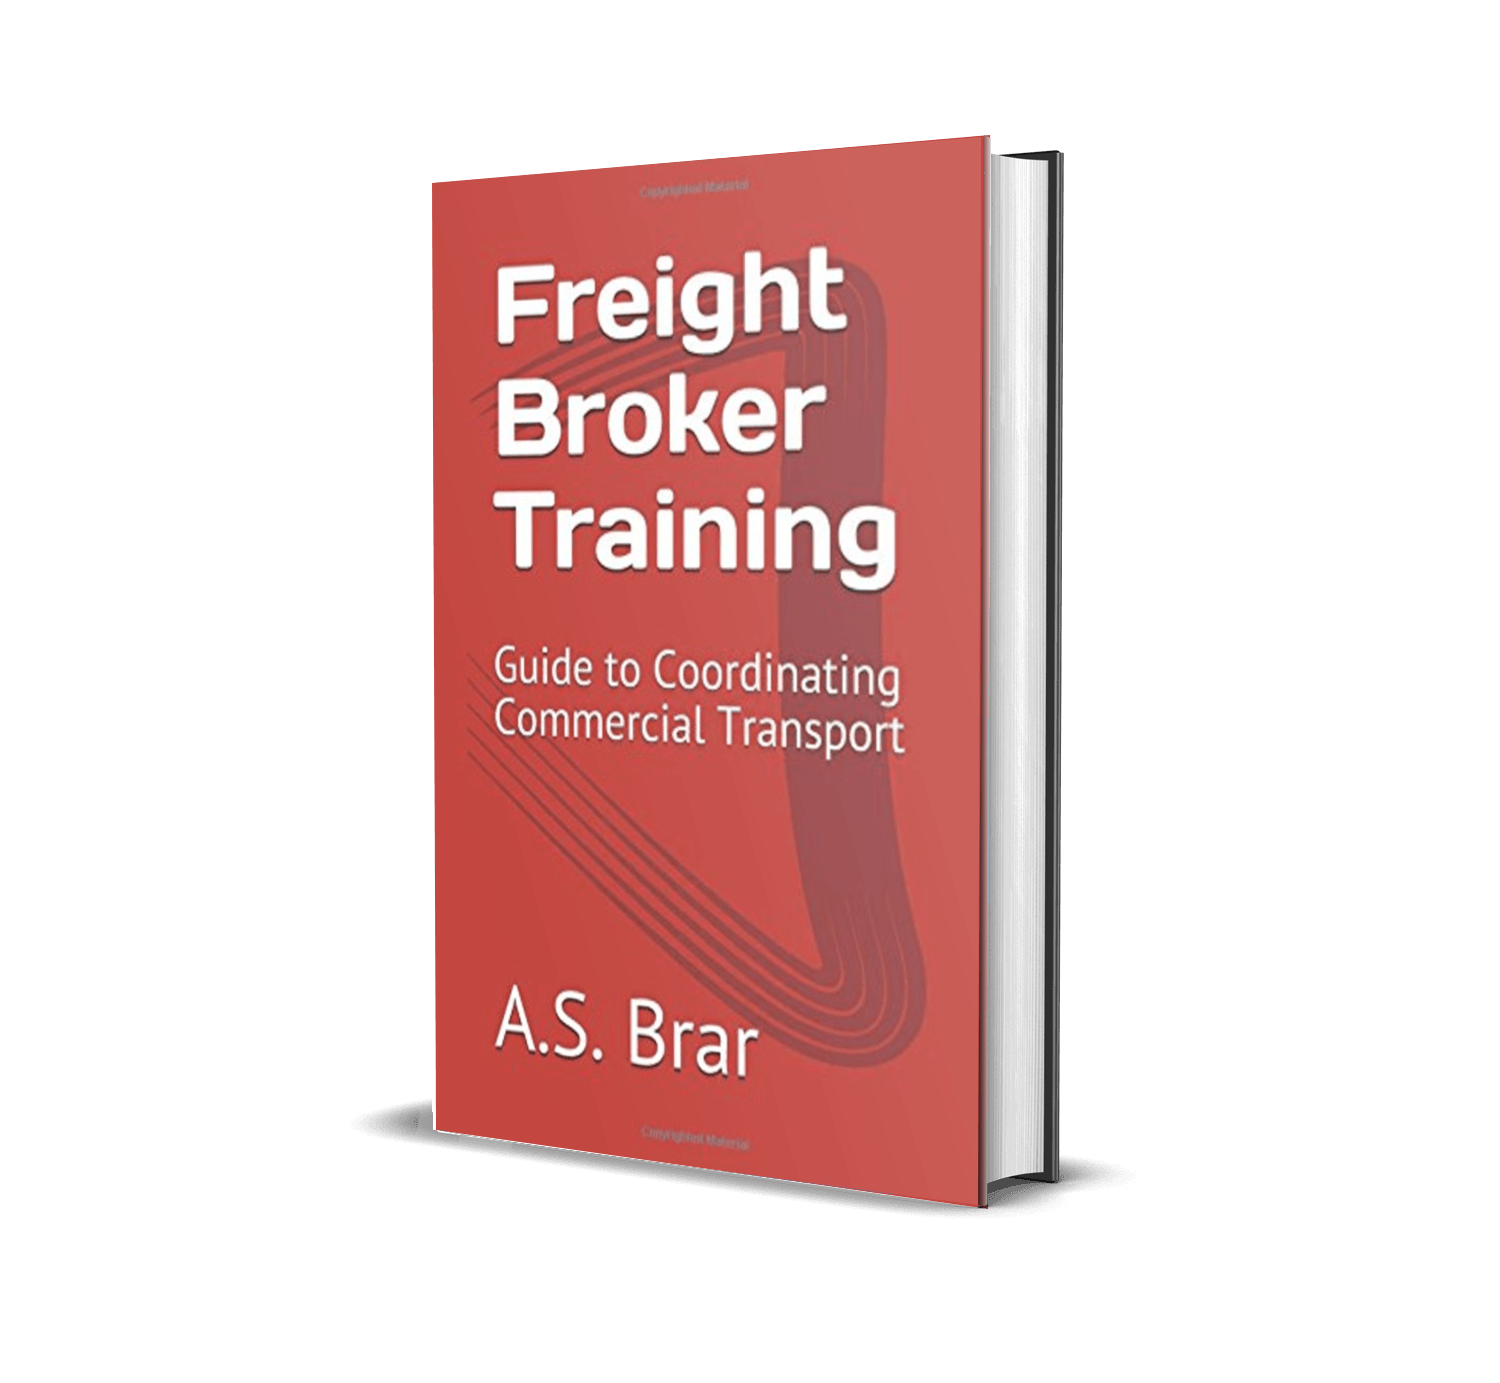 how to become a freight broker truckfreighter com rh truckfreighter com freight broker training guide free freight broker training guide free